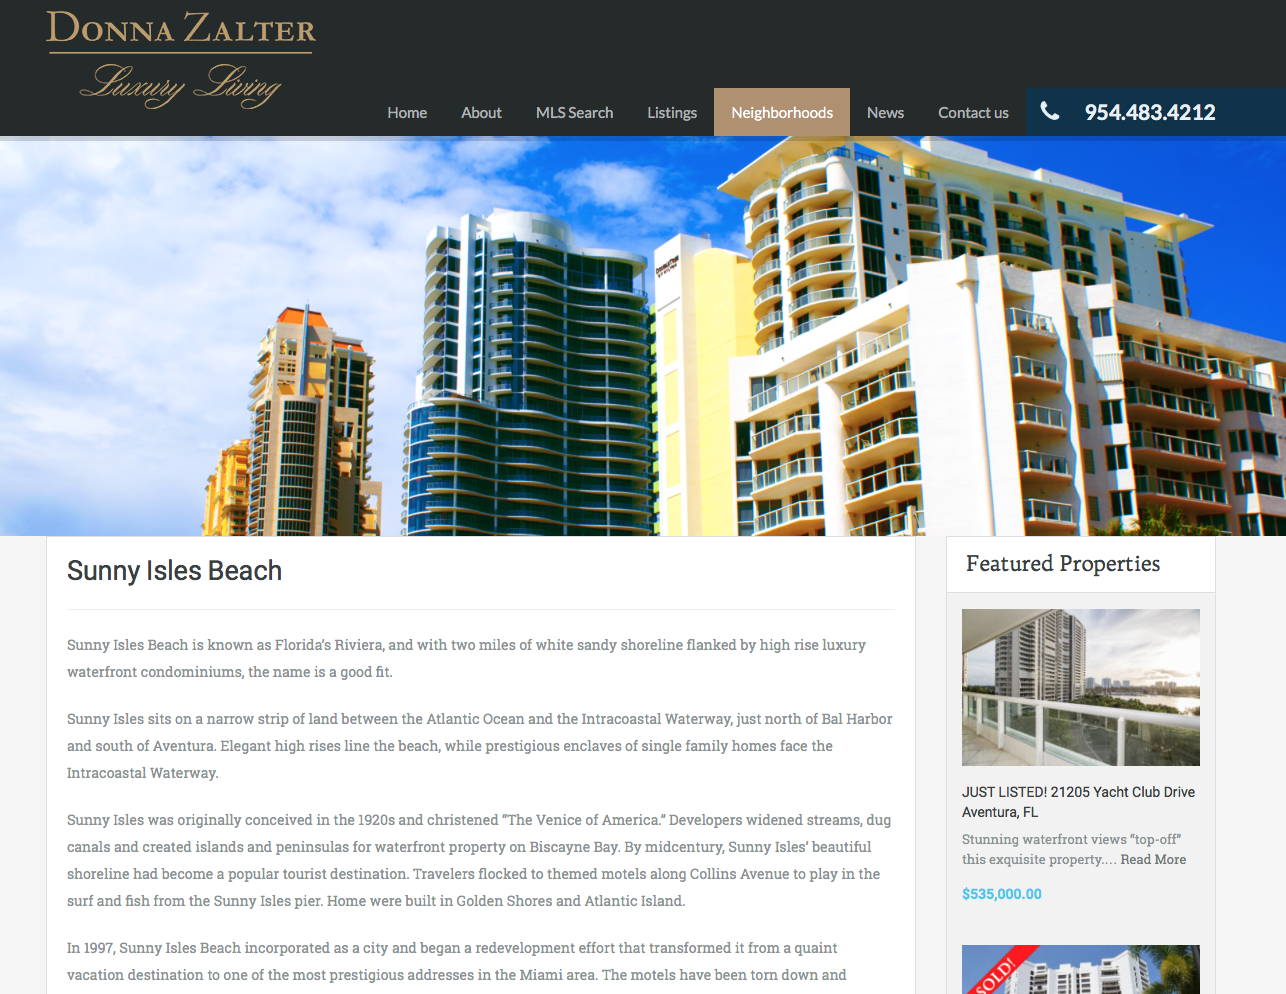 South Florida Luxury Realtor - Luxury realtor Donna Zalter wanted her clients to know she's a smart professional they can trust with a multimillion dollar transaction. But she also wanted her site to offer the kind of friendly, in-the-know advice she likes to give in person. The solution? A new bio and a series of pages focusing on properties and things to do in neighborhoods like Sunny Isles Beach and Hallandale.